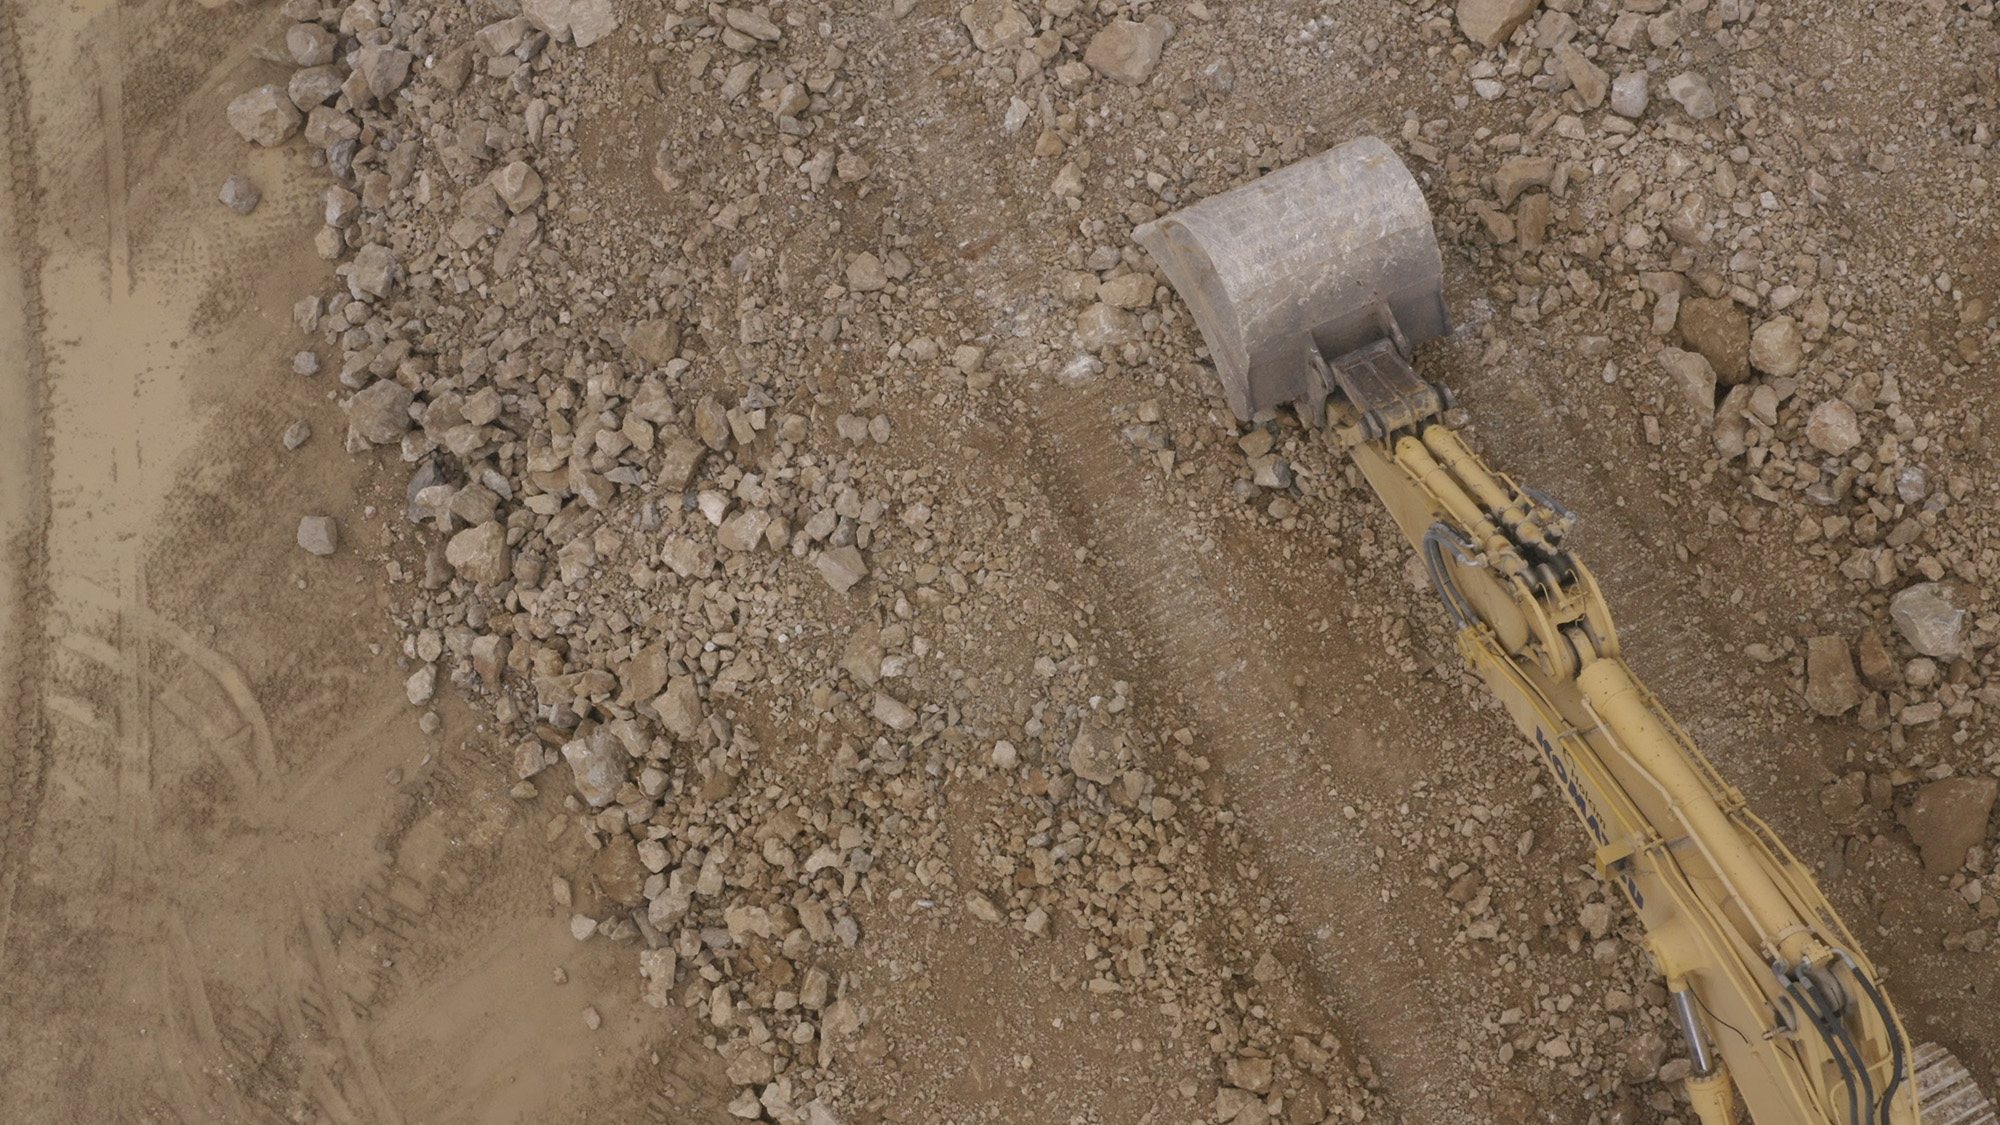 Drone view of an excavator at Le Mormont, Canton of Vaud, Switzerland, 2020